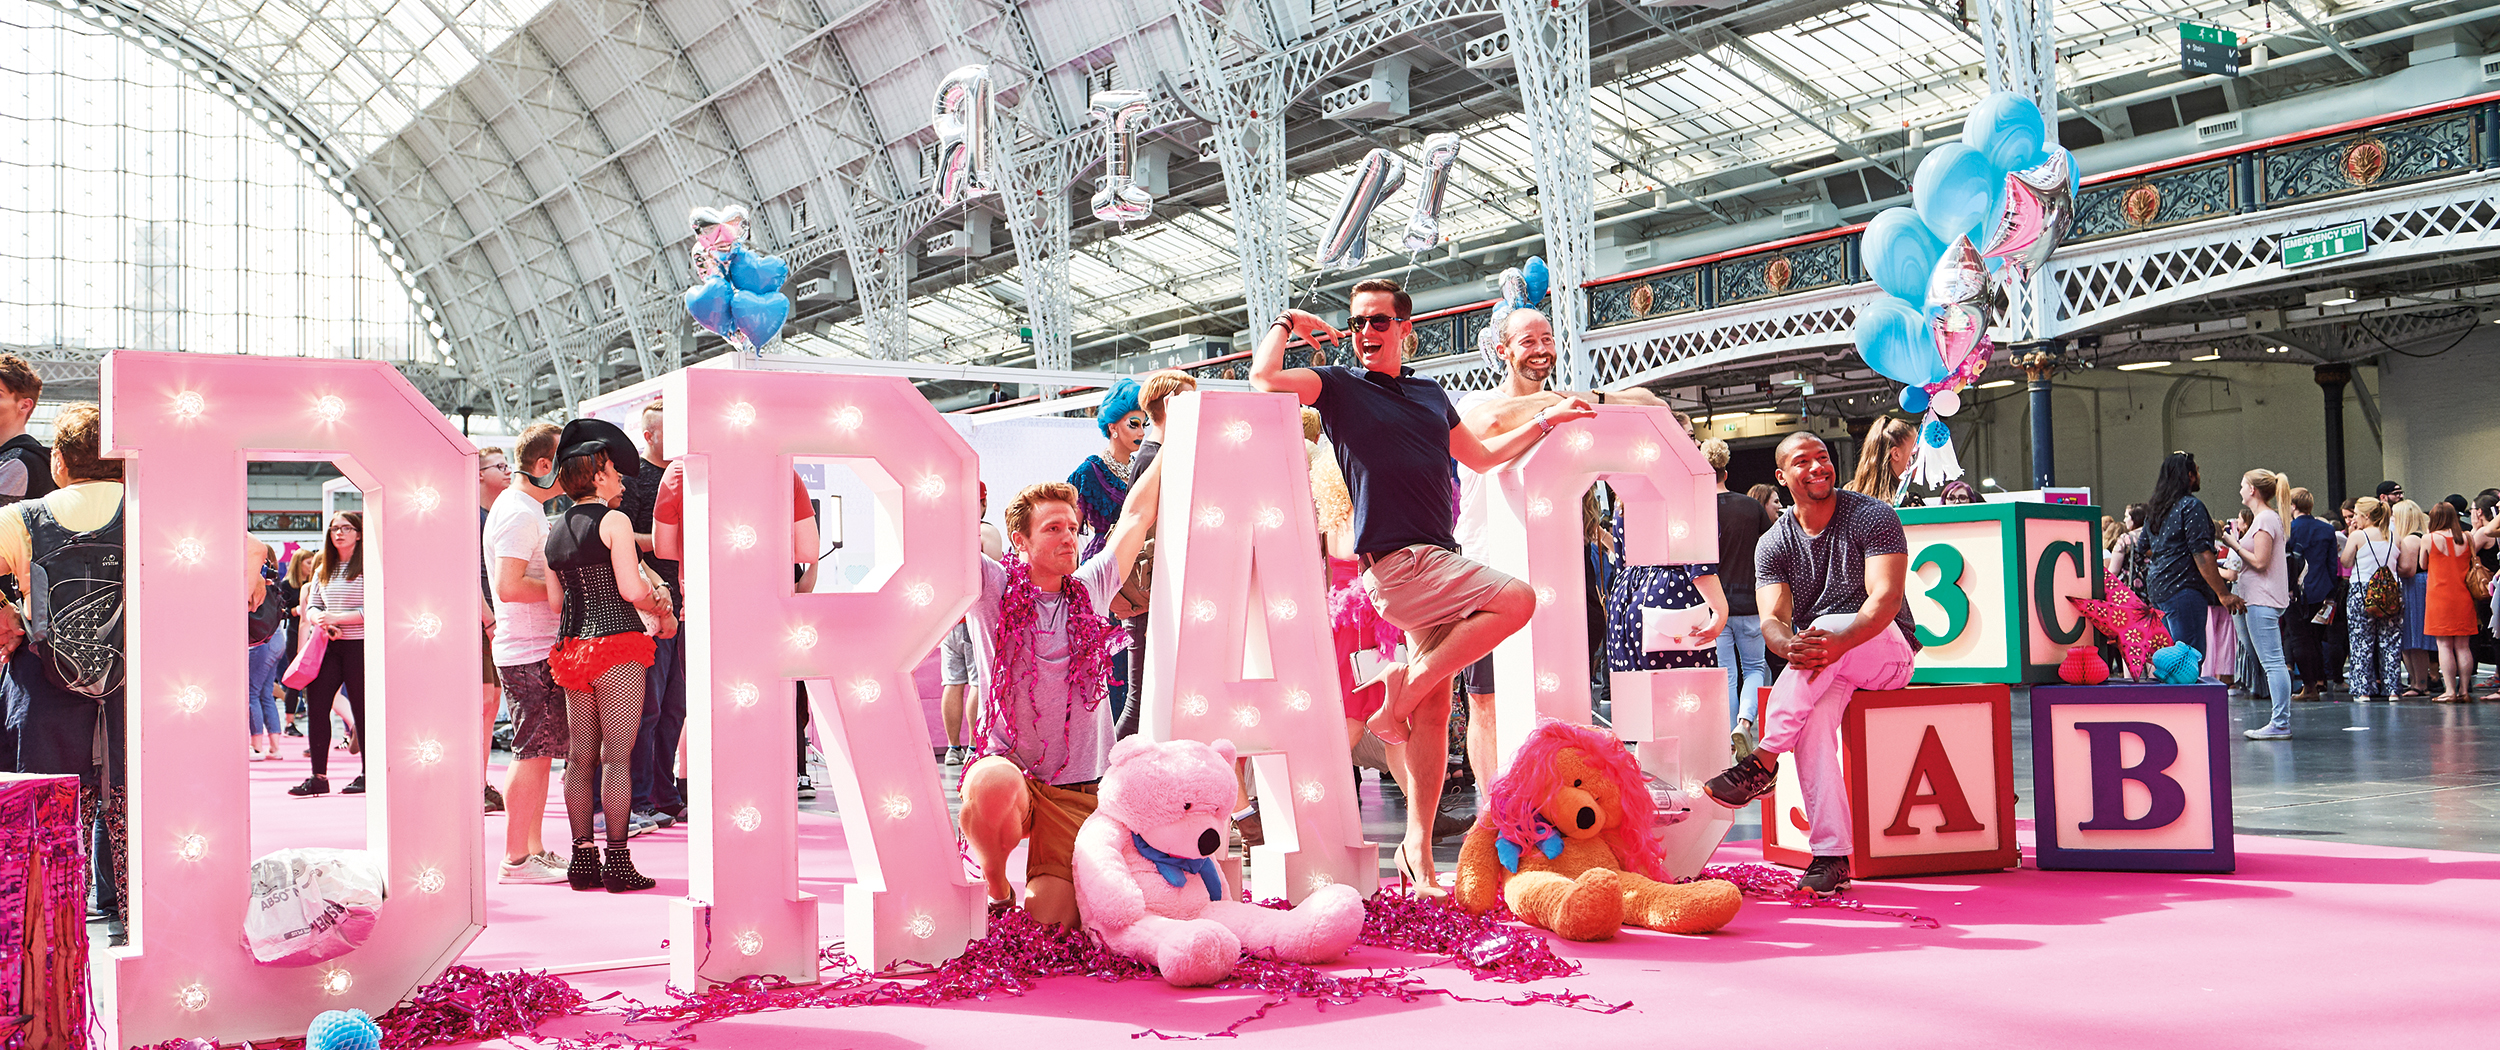 Olympia London - The Present -Drag World.jpg